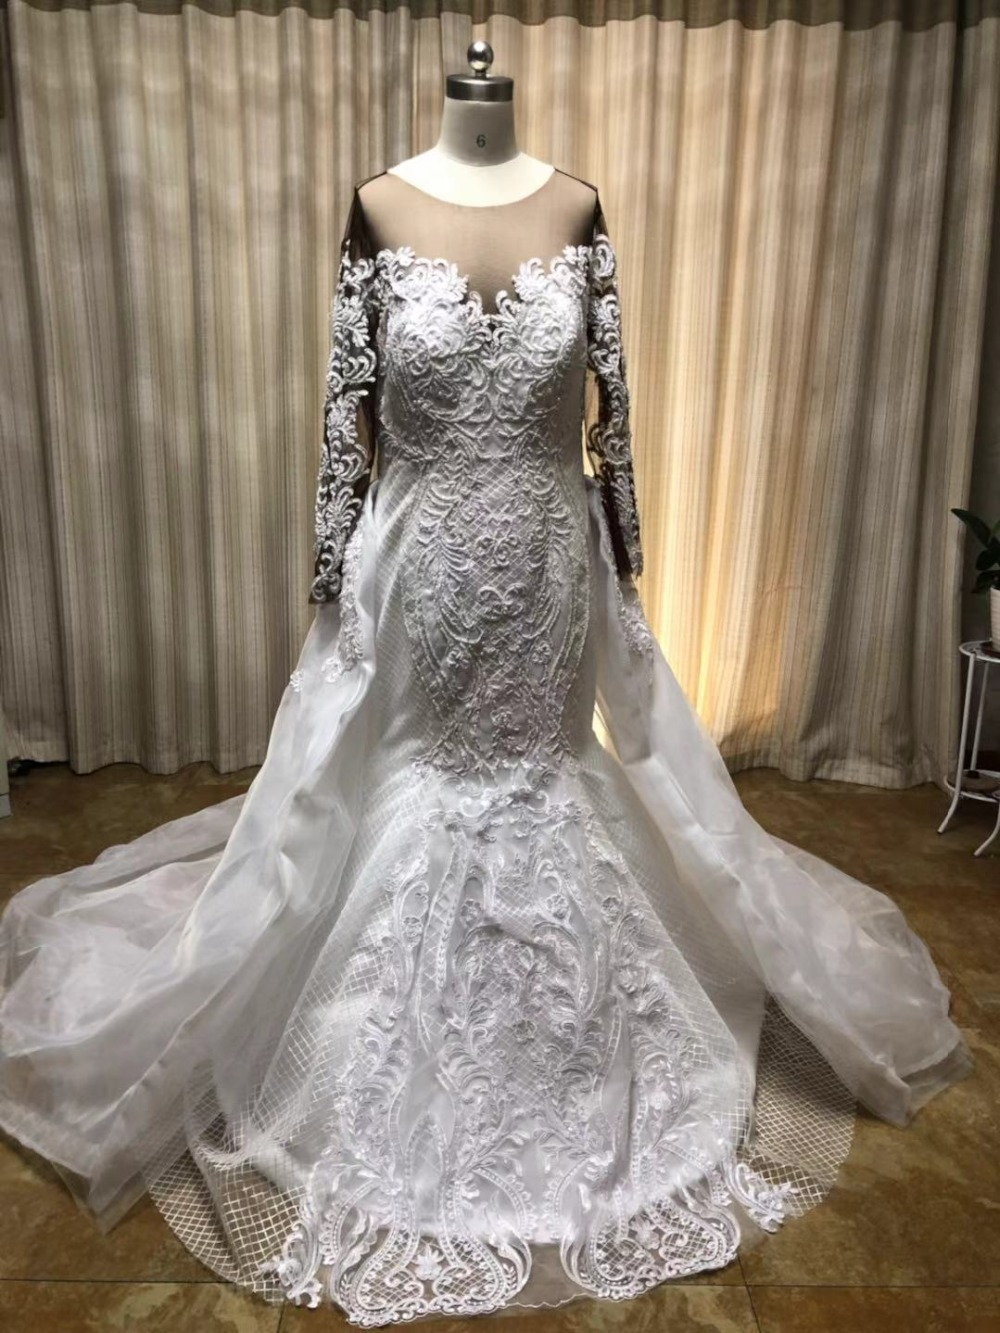 US $245.99 18% OFF|2019 Lace Long Sleeve African Wedding dresses Two piece  Casual Wedding dresses plus size Detachable Train Robe de marie-in Wedding  ...